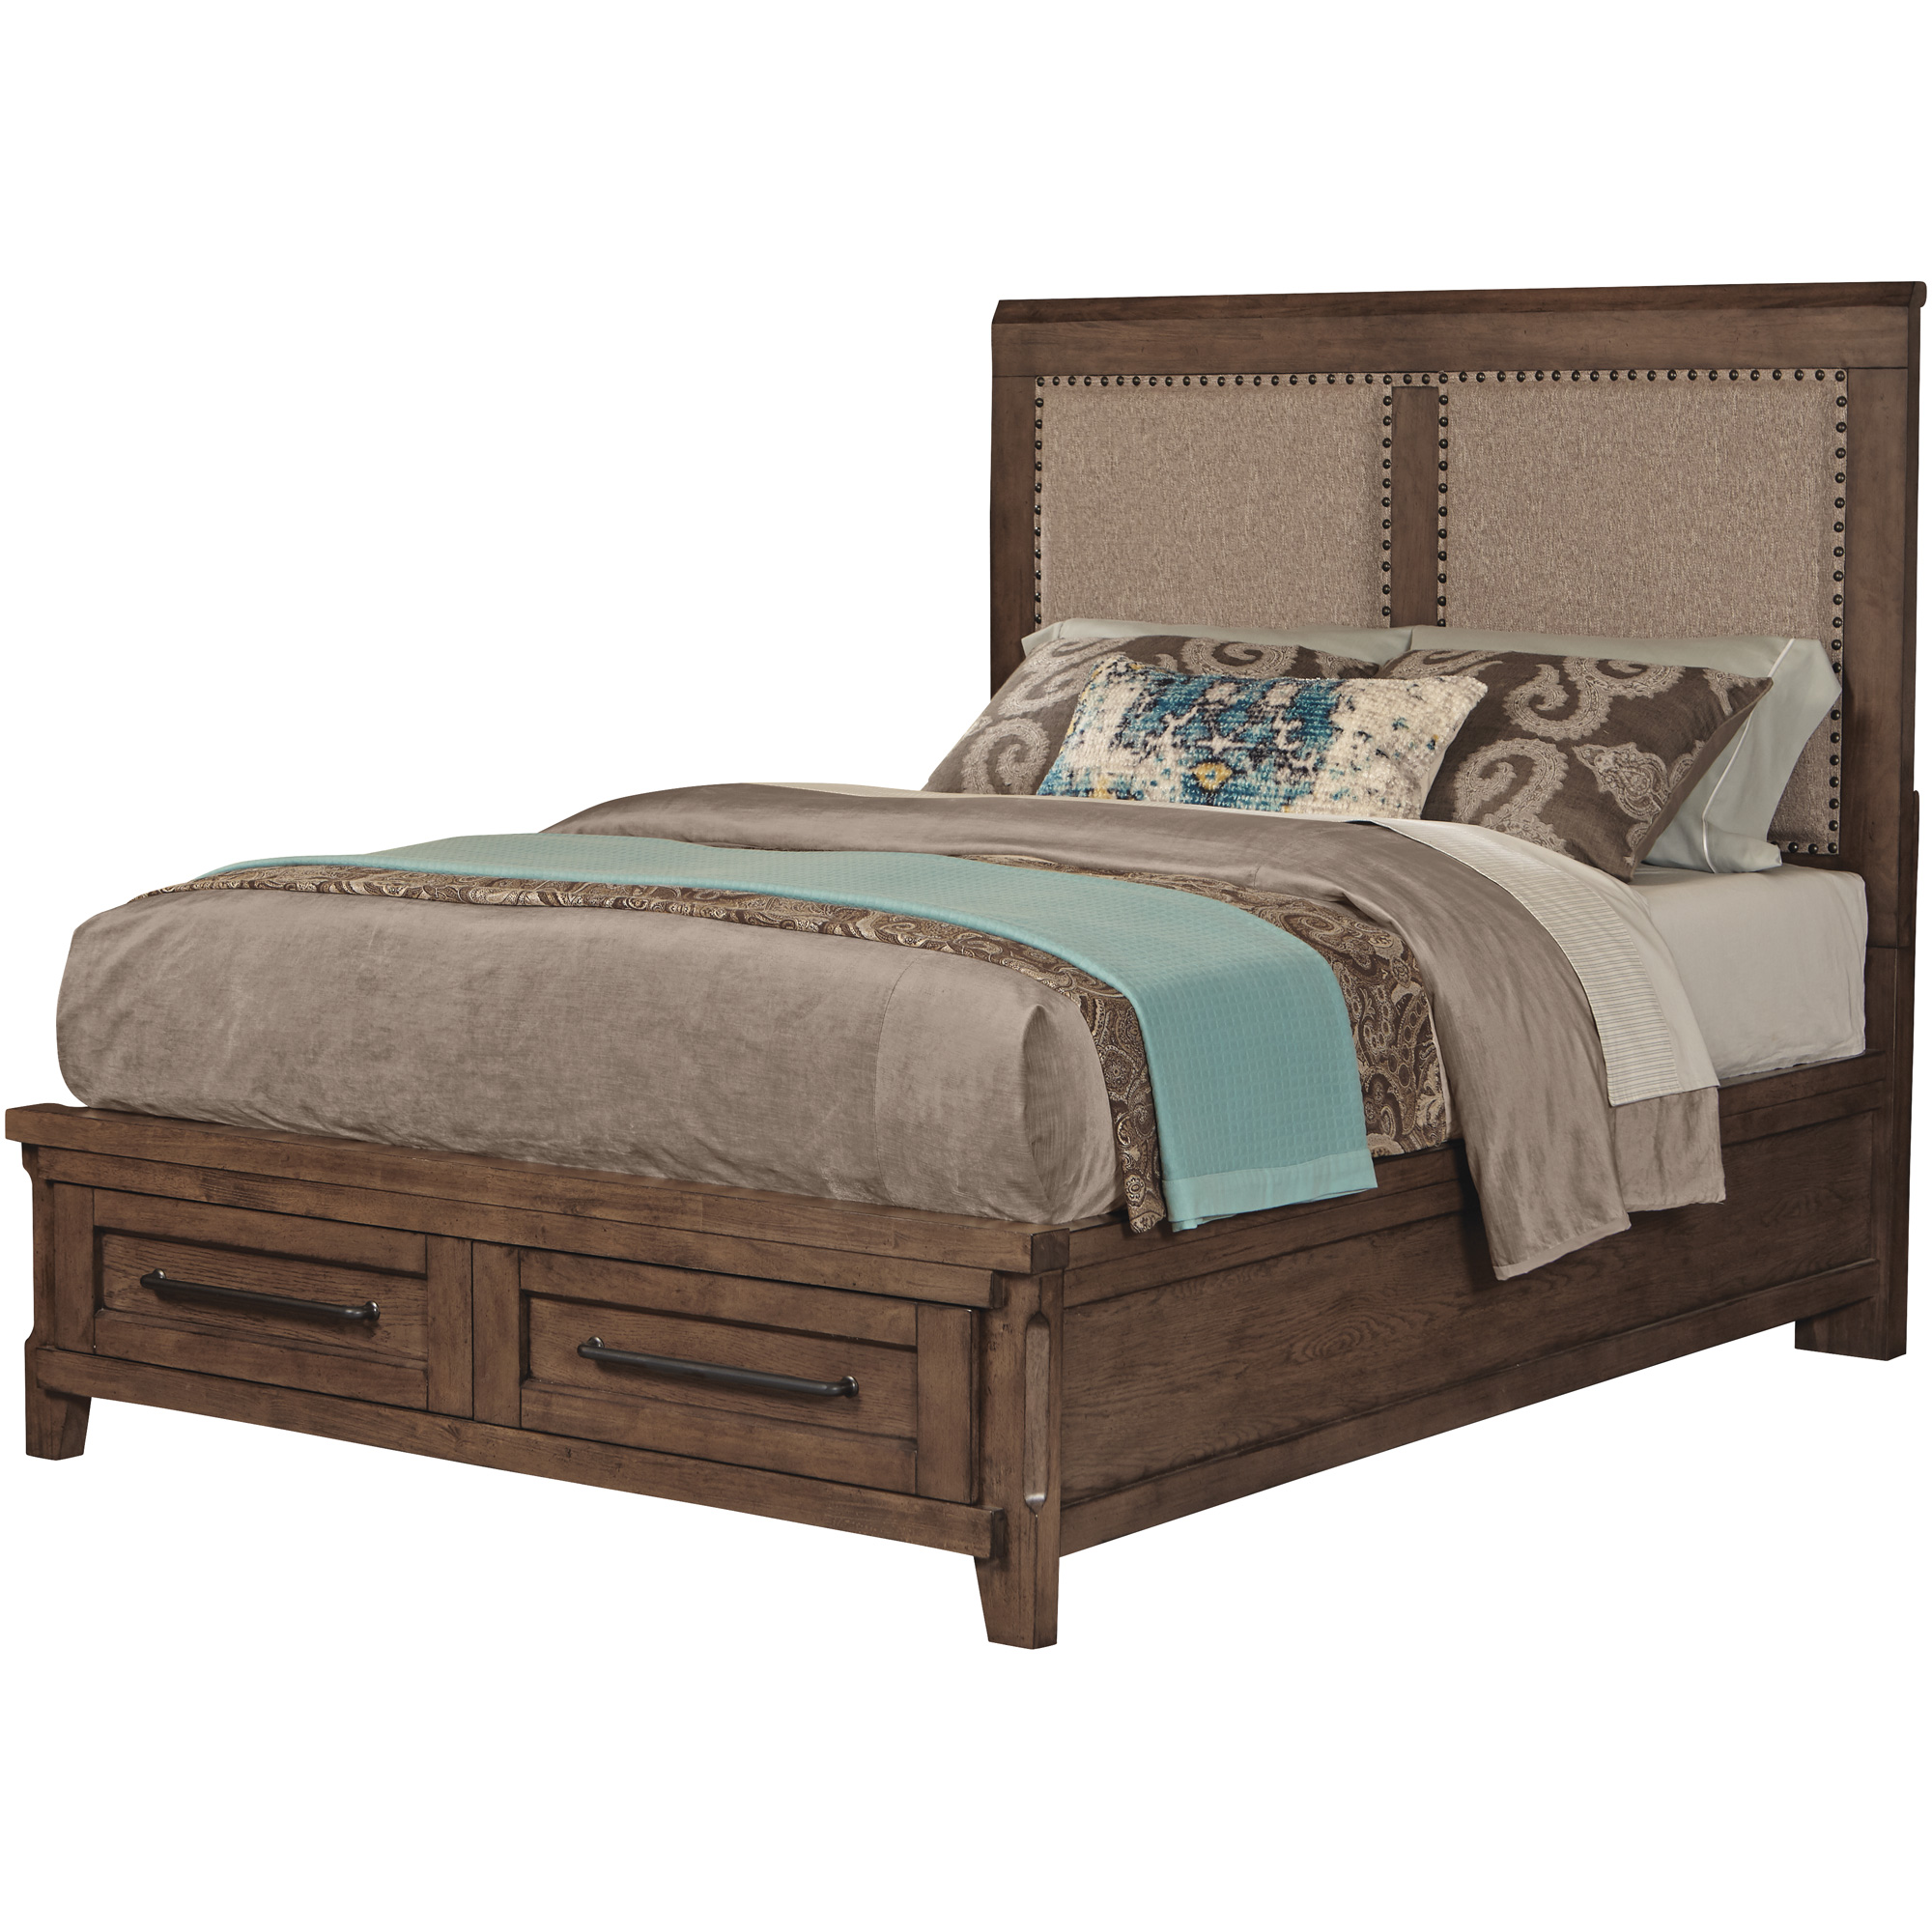 Davis Direct | Patches Gray Brown Queen Upholstered Storage Bed